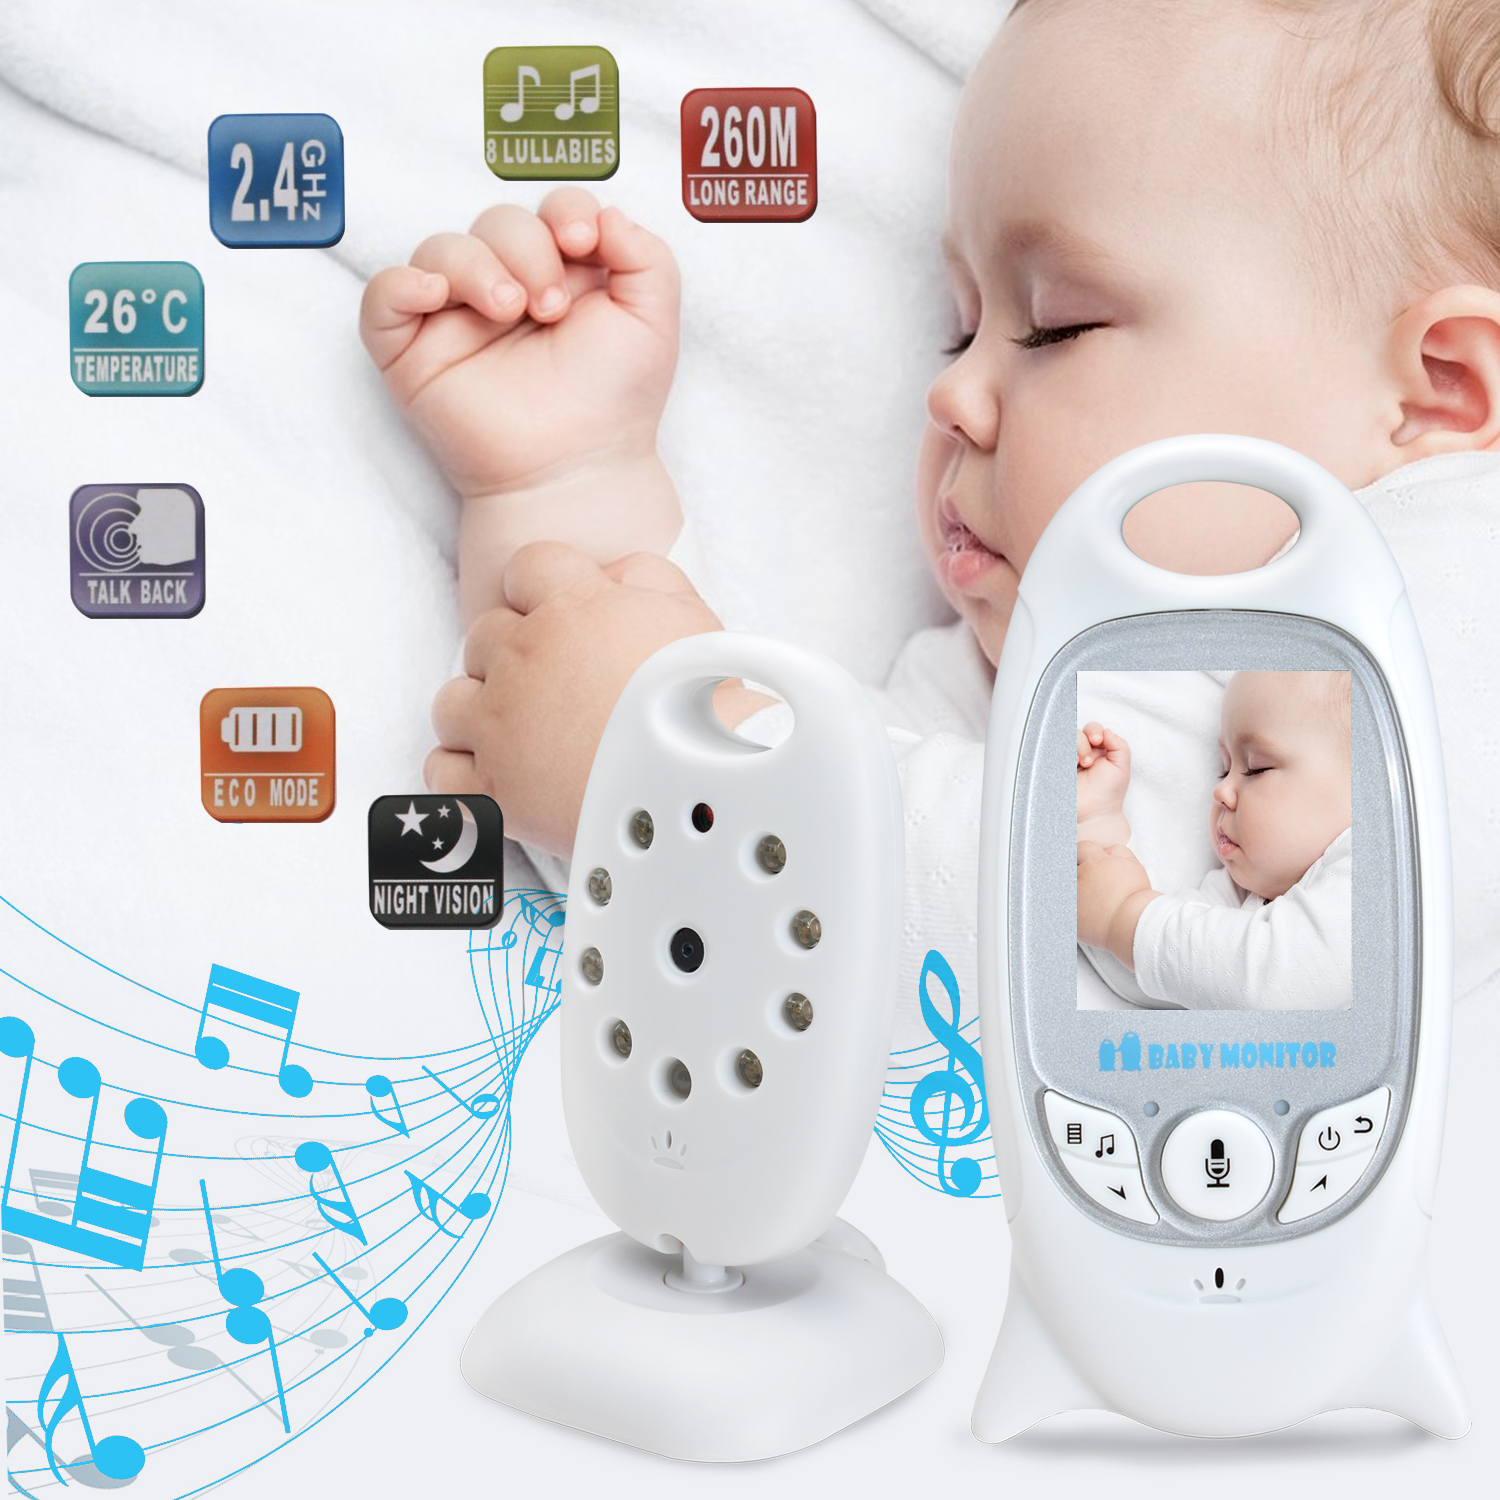 Baby Infant Wireless Video Camera Monitor Night Vision 853ft Signal Range Stable Connection